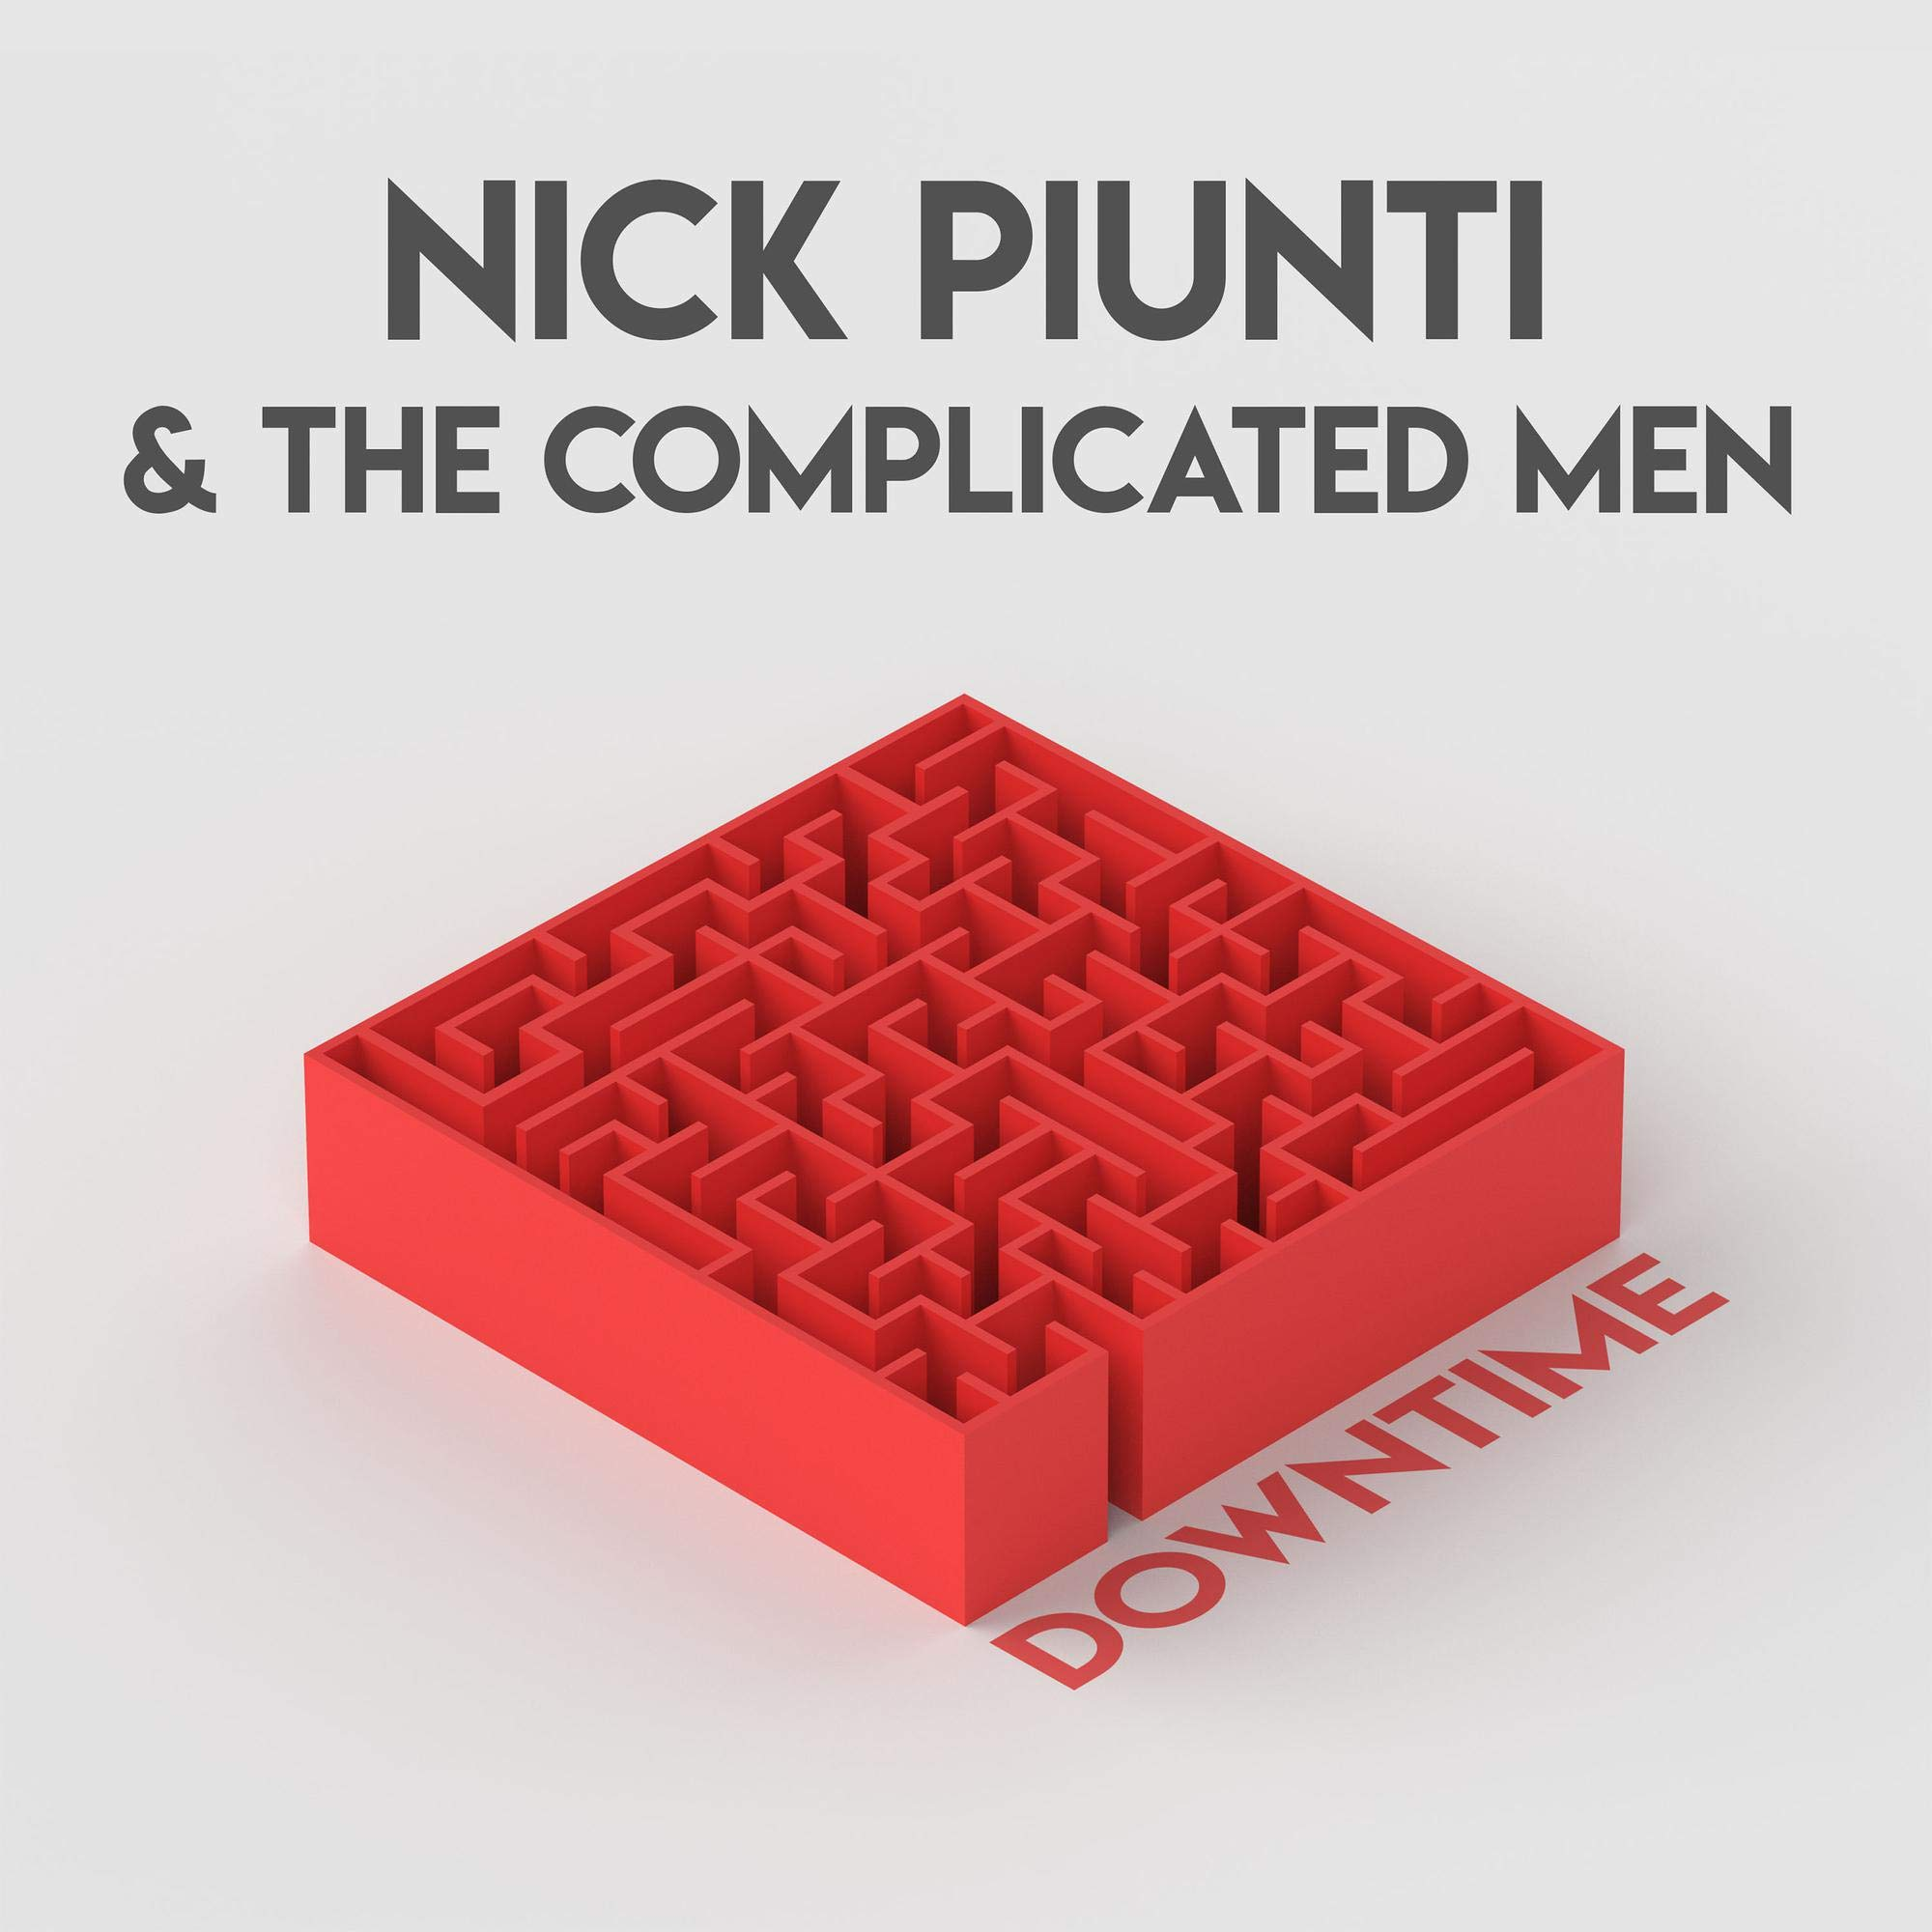 Nick Piunti & The Complicated Men – Downtime (2020) [FLAC]